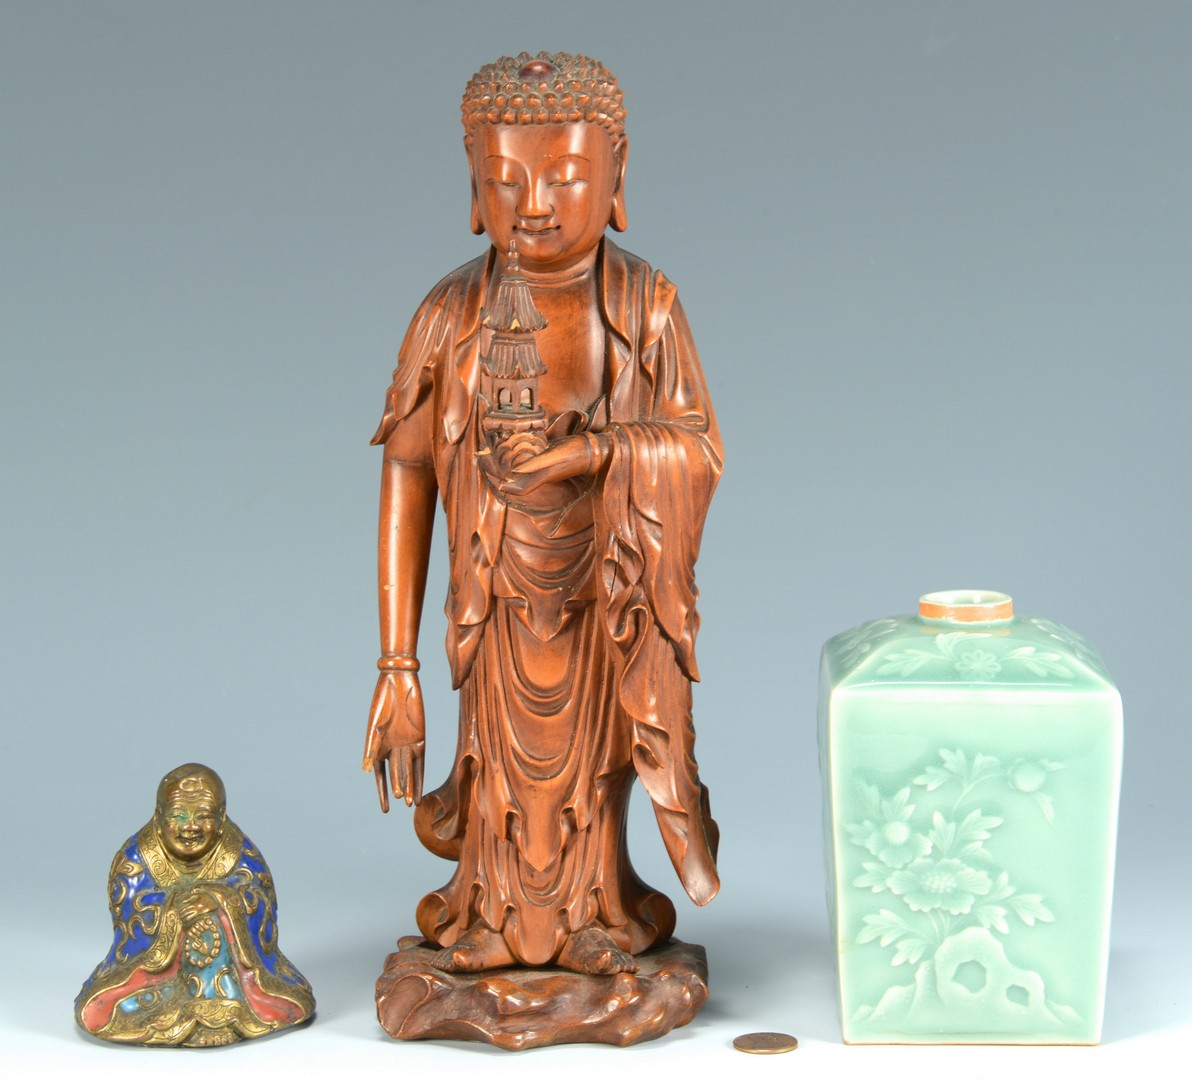 Lot 3383254: 2 Asian Figures and a Vase